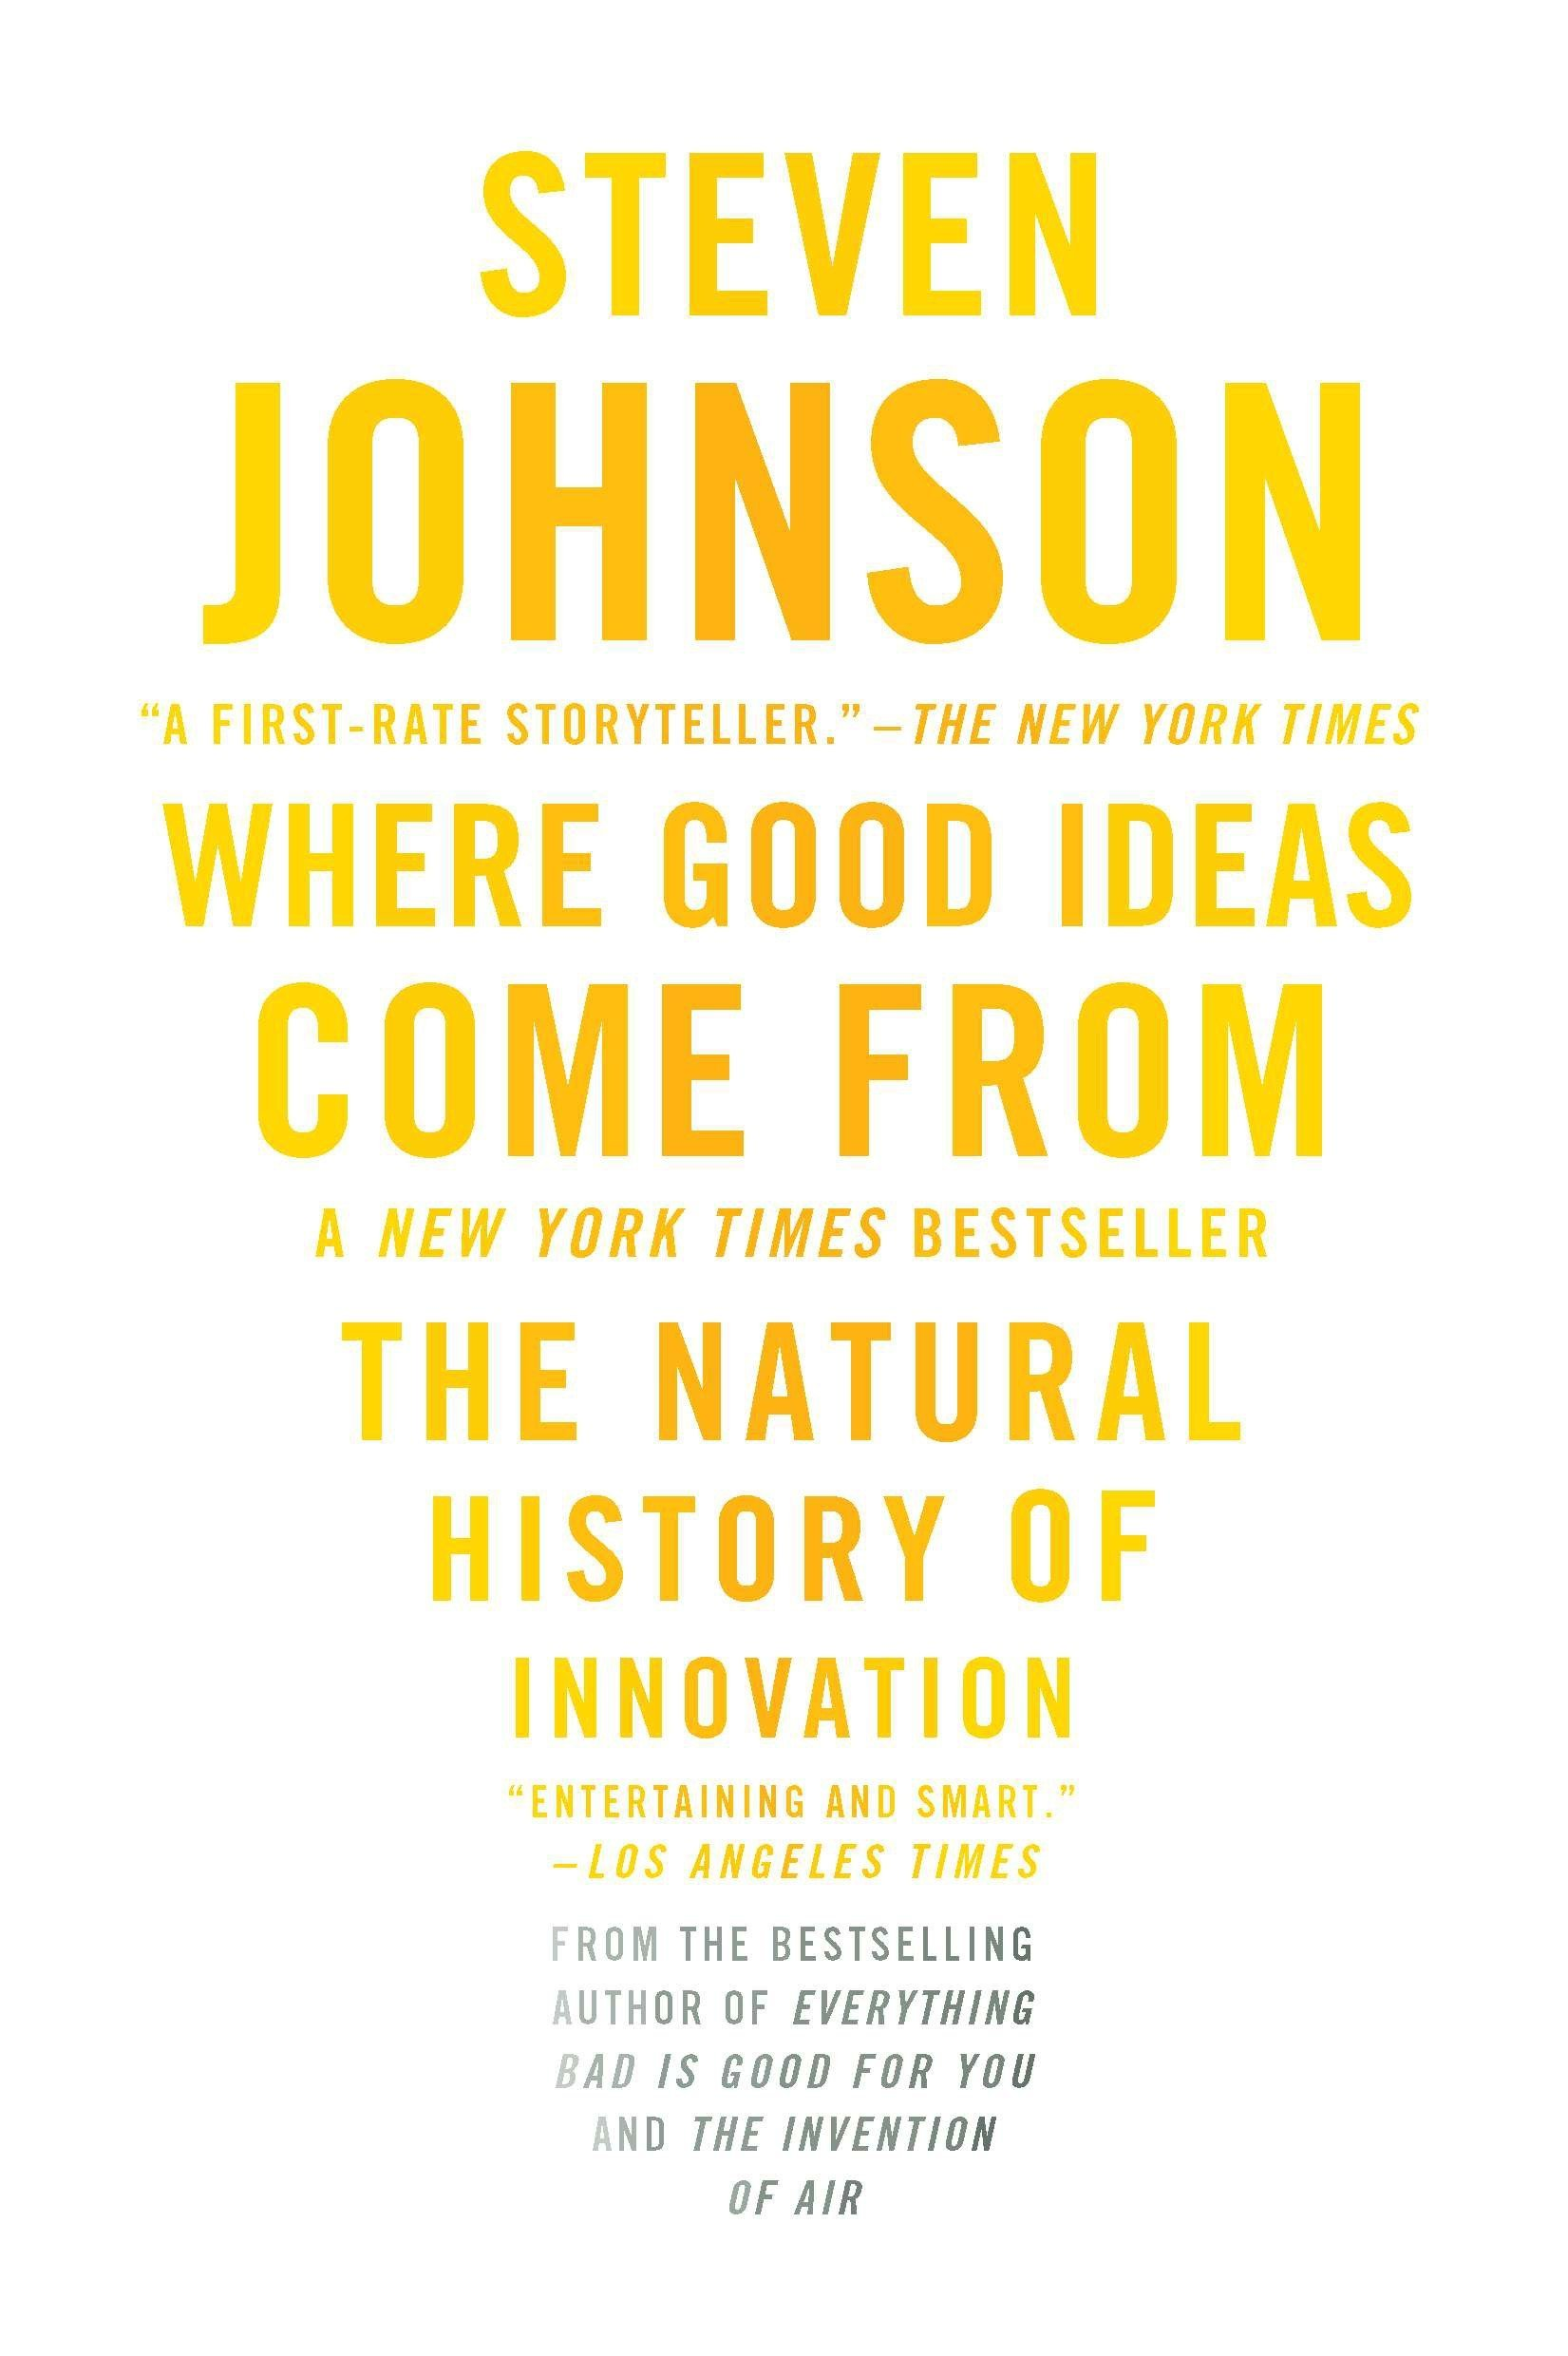 Where Good Ideas Come From: The Natural History of Innovation